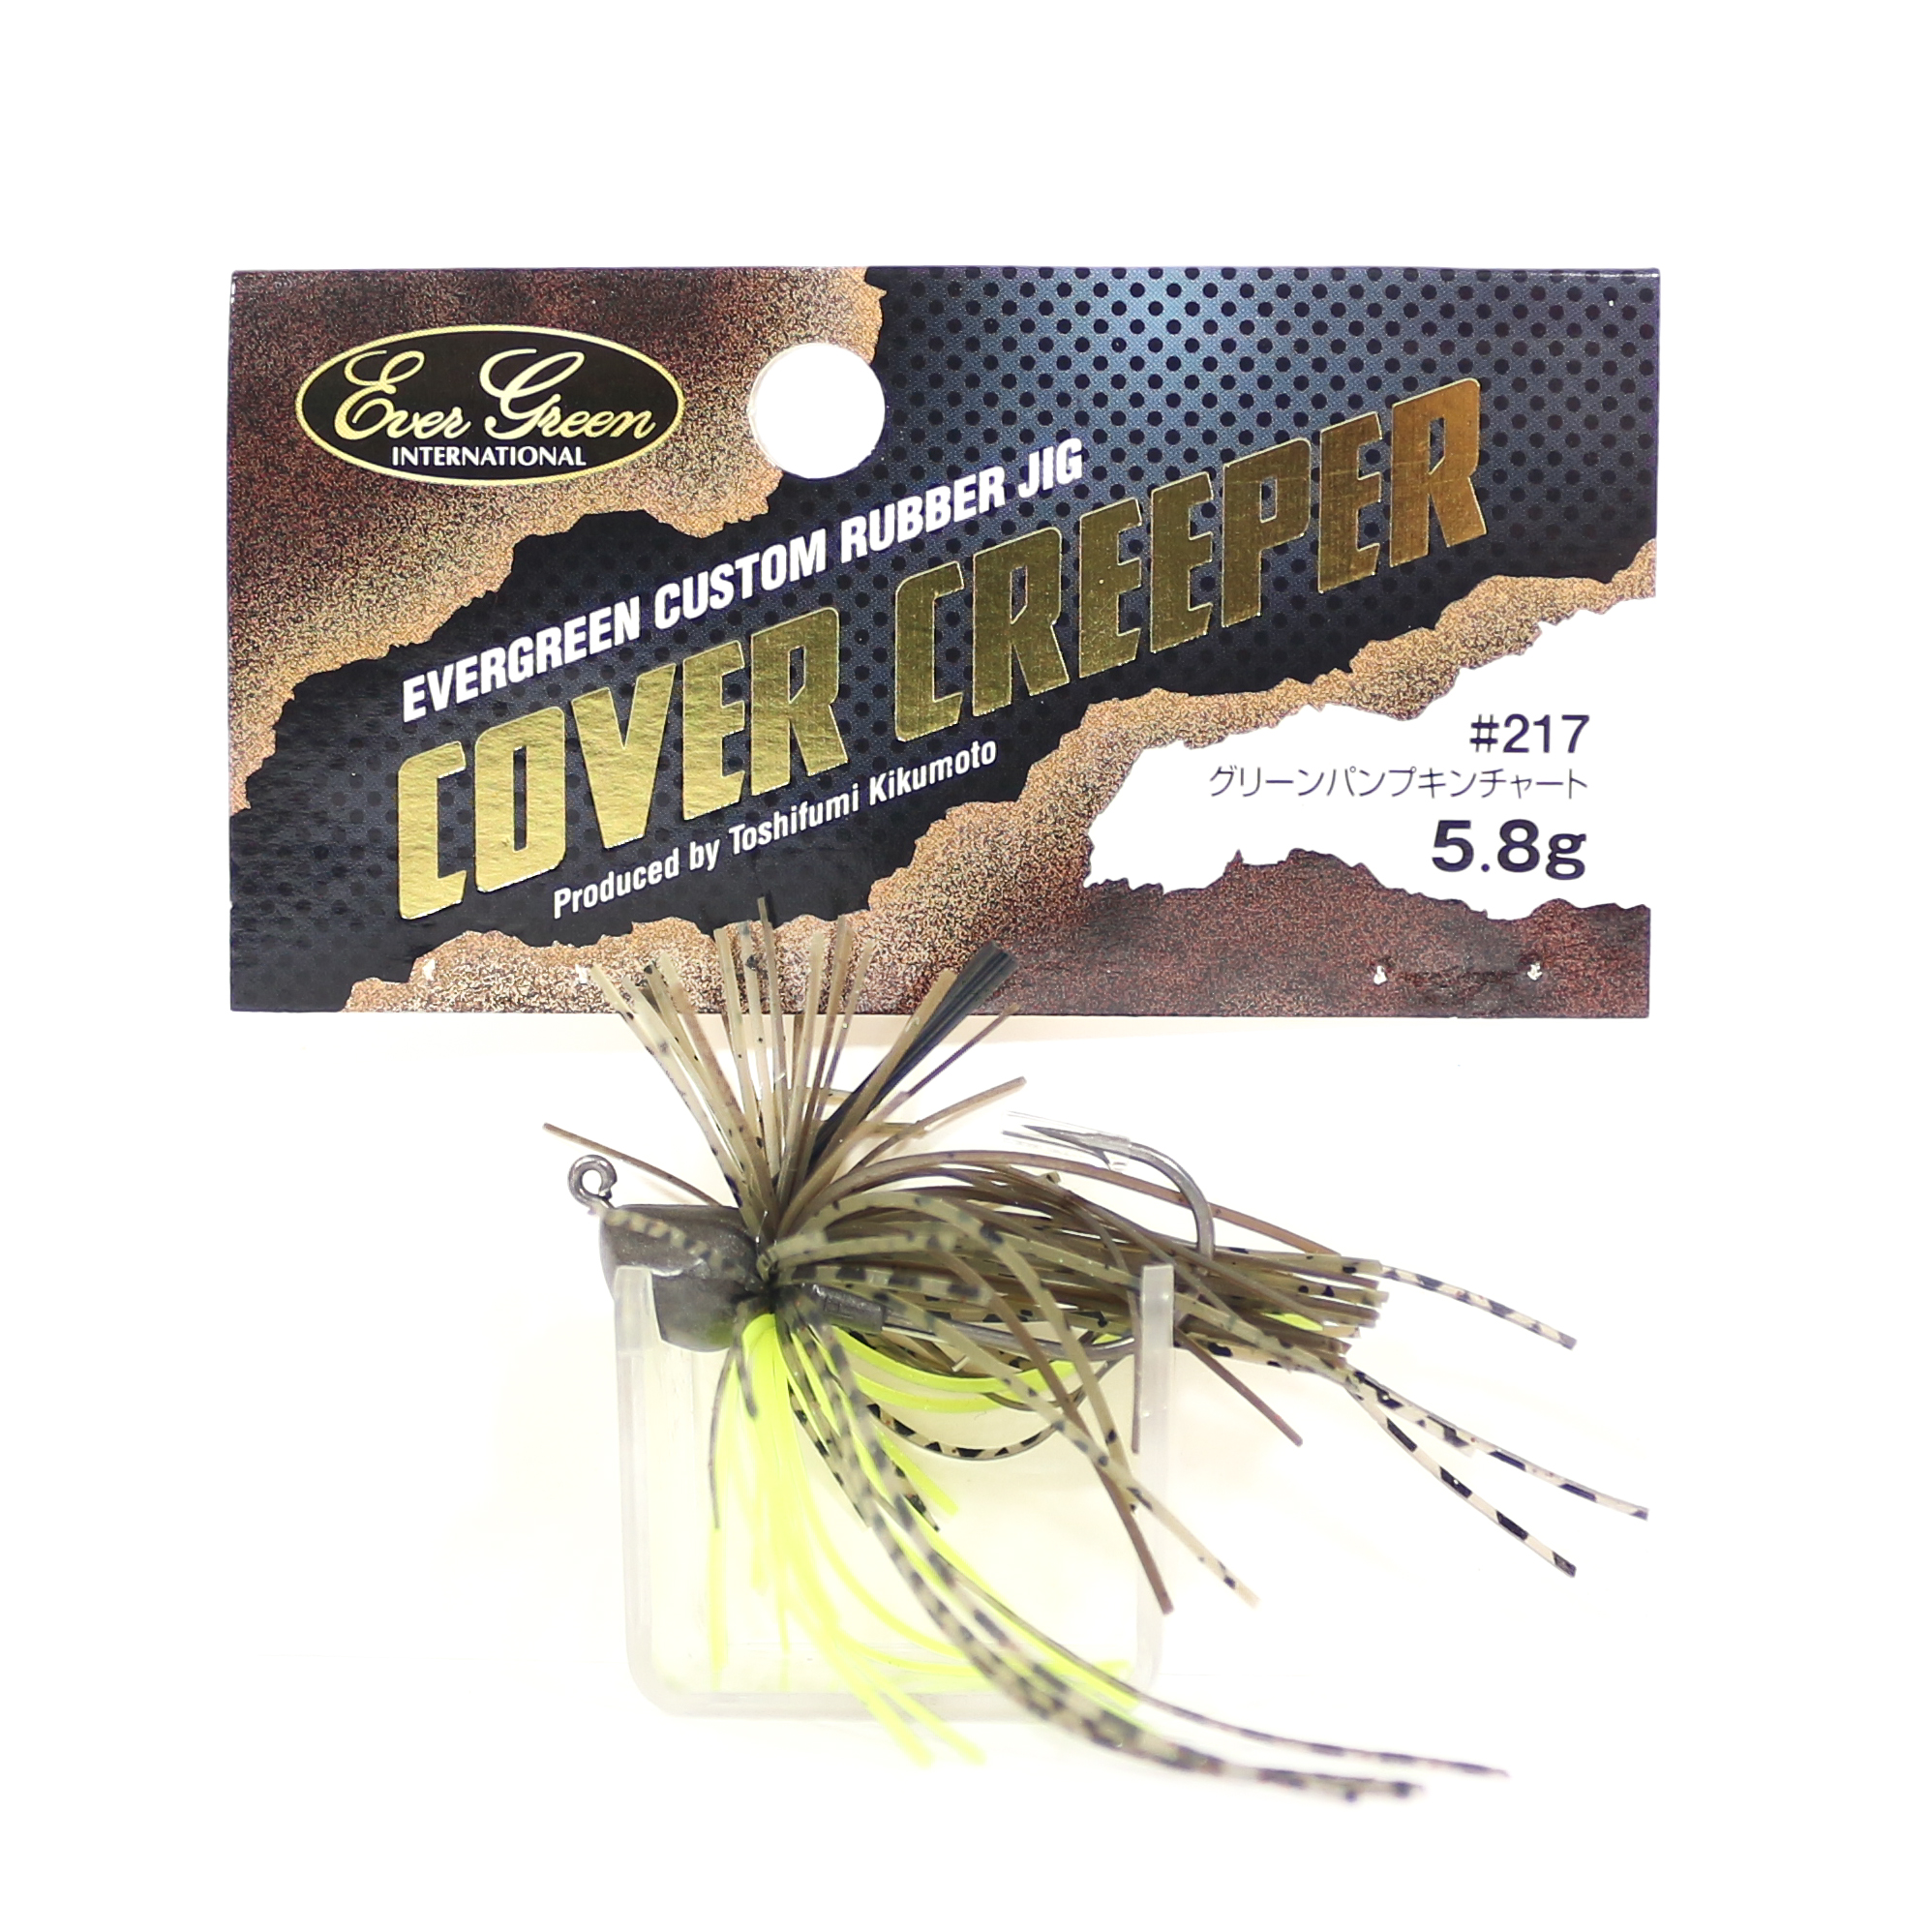 Evergreen Rubber Jig Cover Creeper 5.8g Sinking Lure 217 (3634)